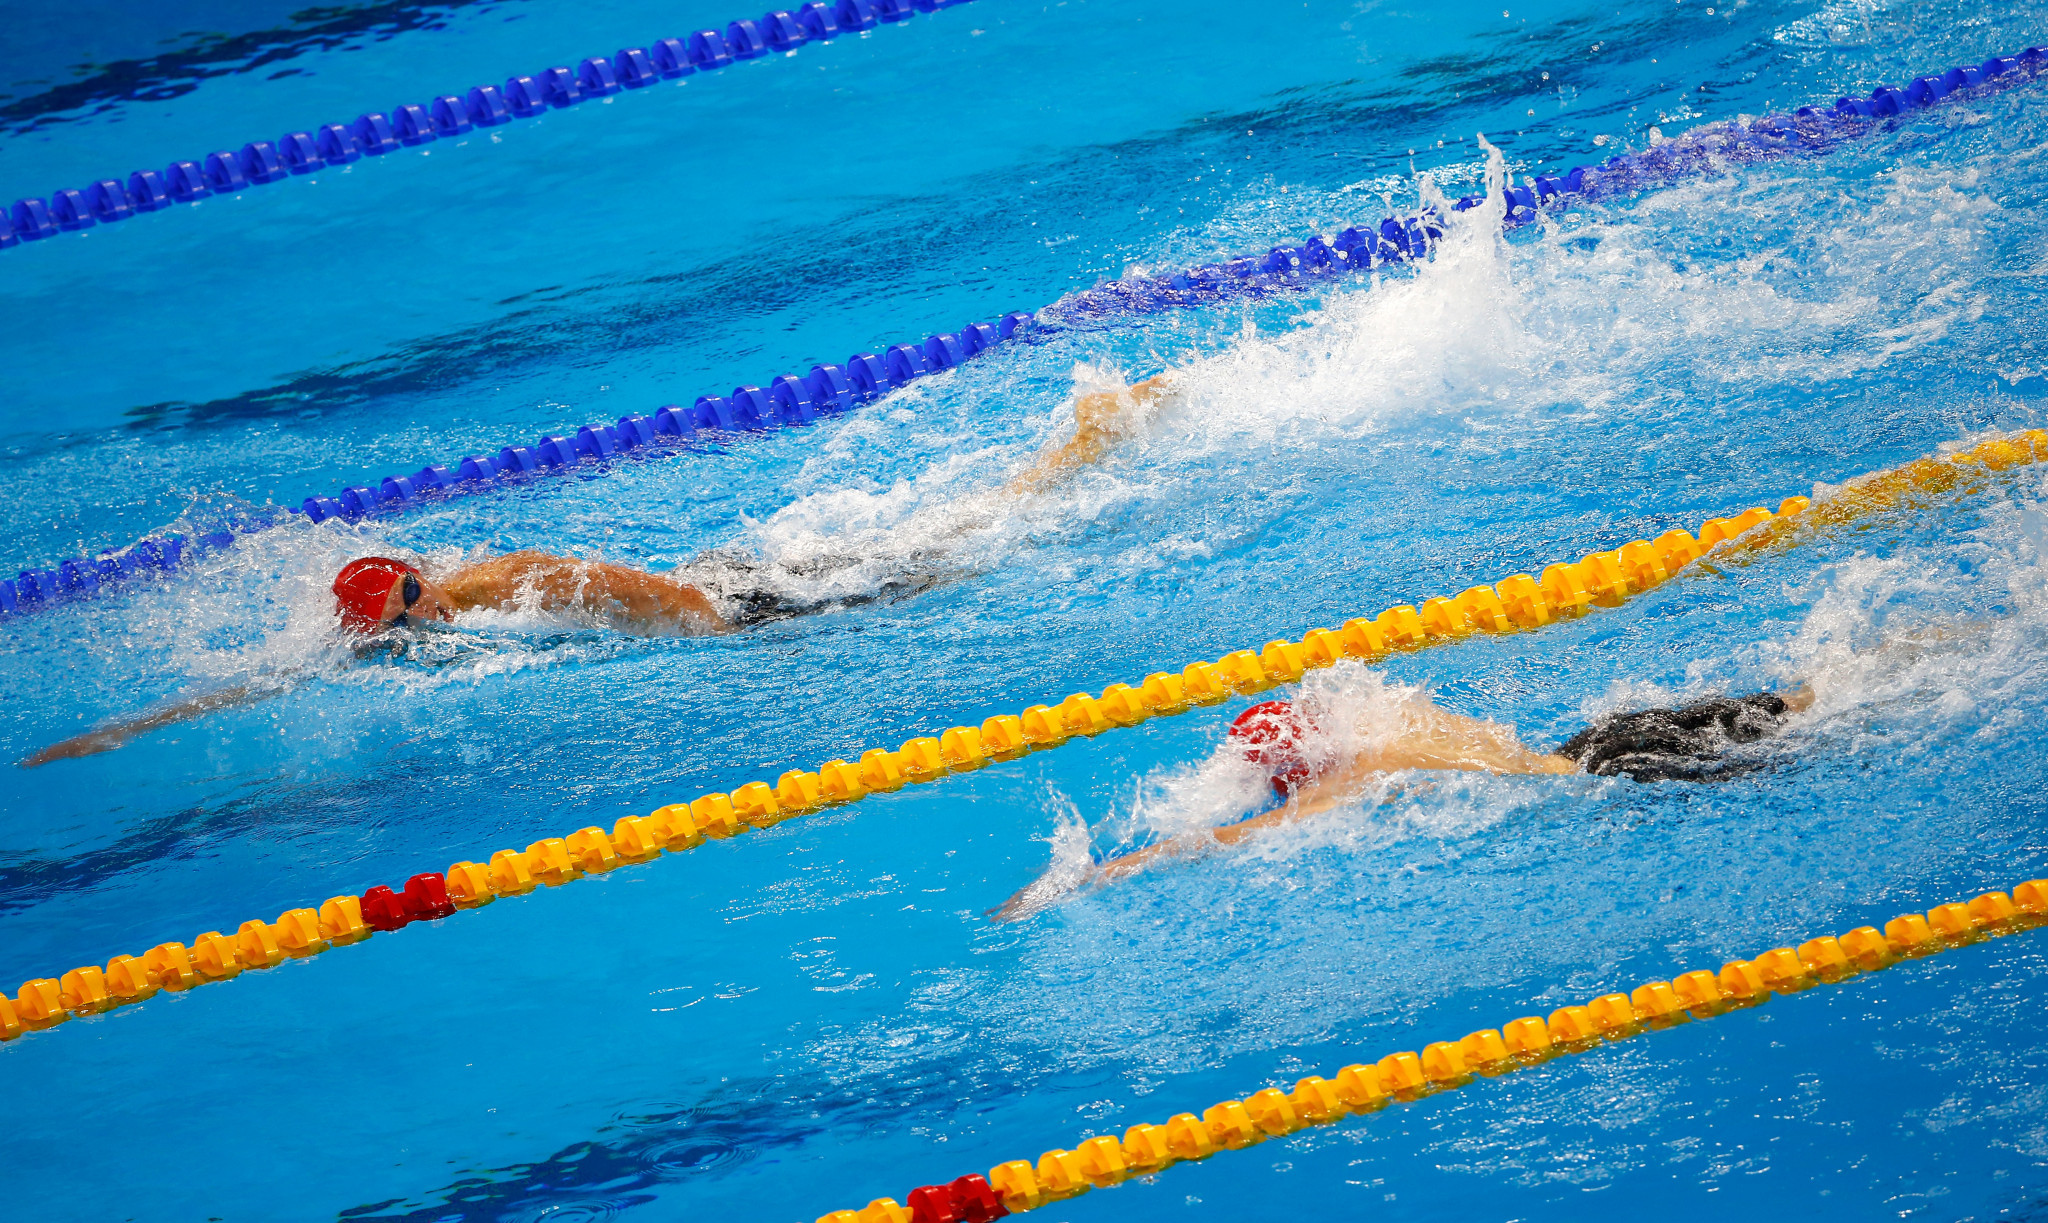 Only junior swimming competitions were held at the Baku 2015 European Games ©Getty Images